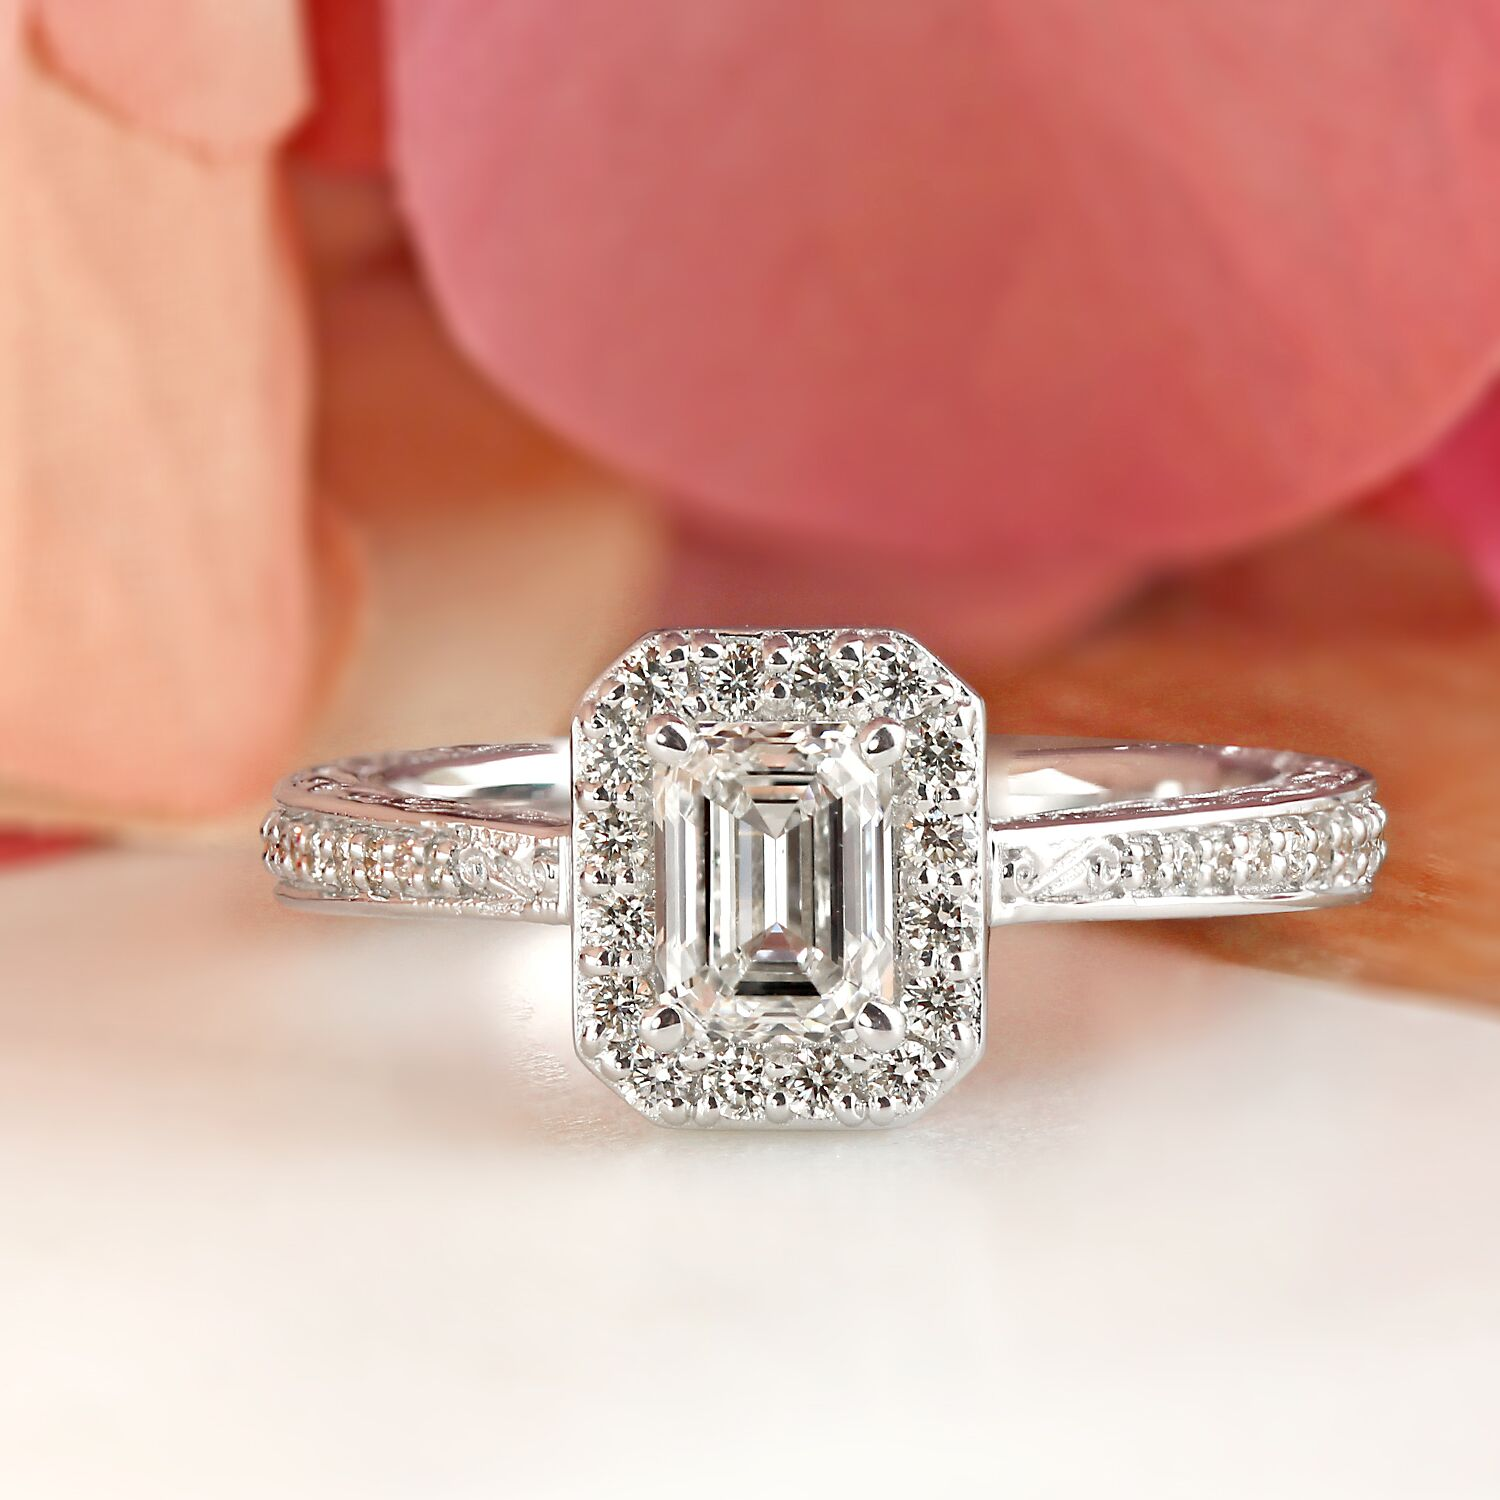 Tips for Buying an Emerald Cut Diamond